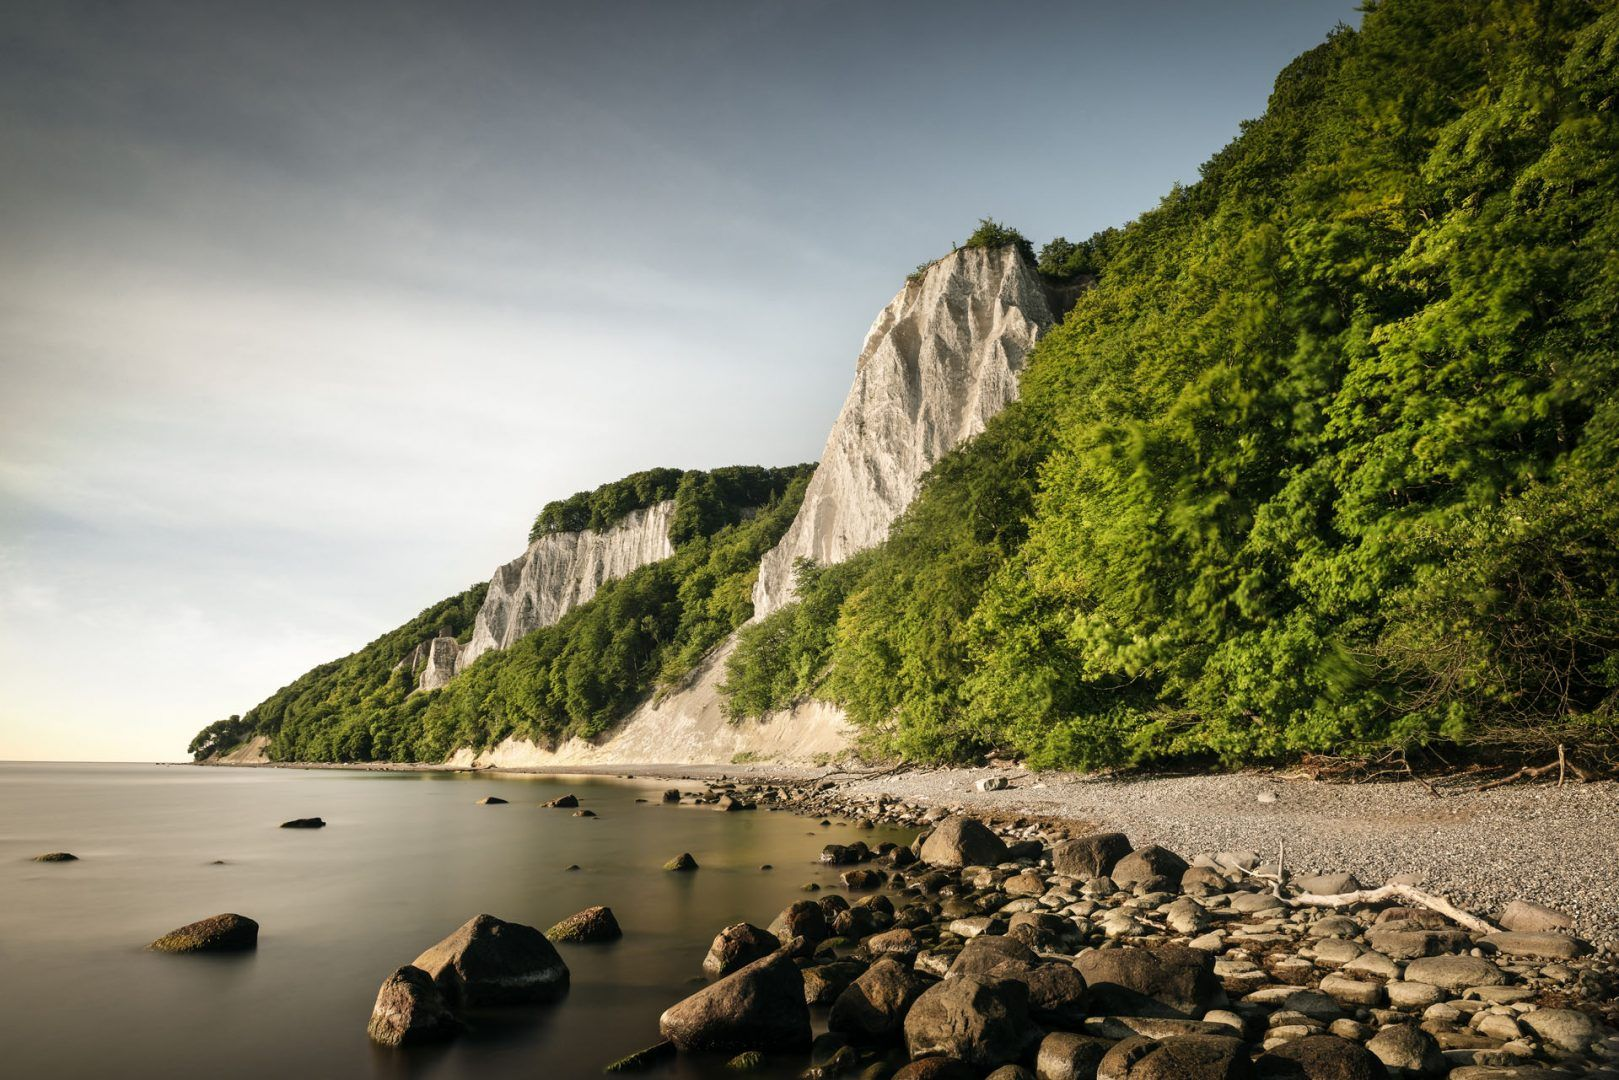 Chalk cliffs on the island of Rügen in Jasmund National Park